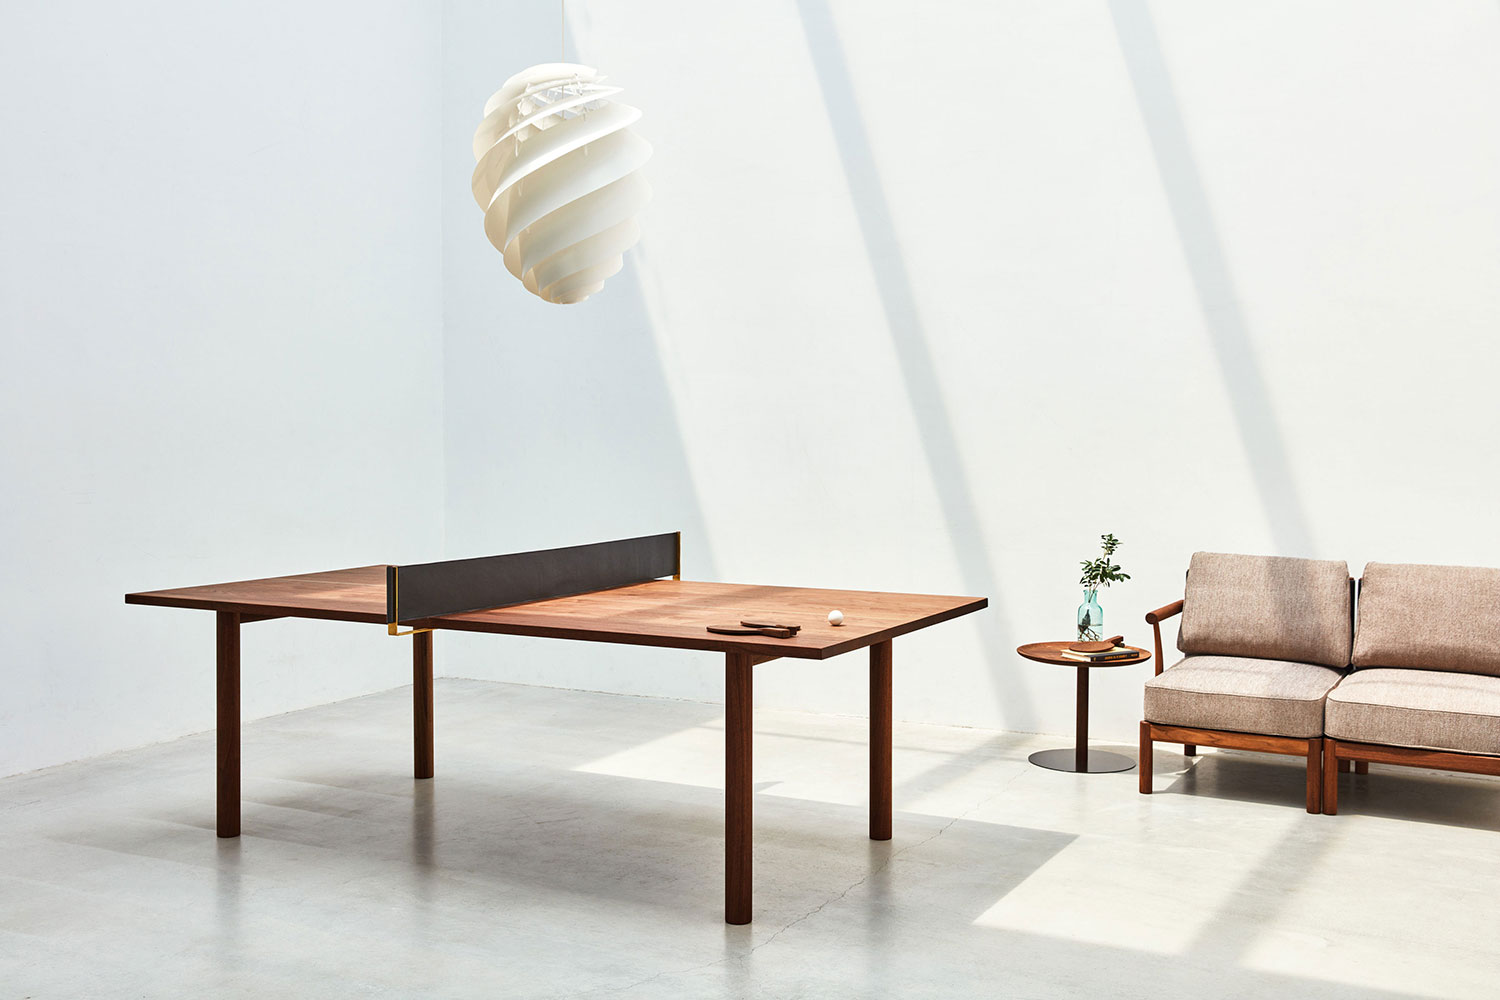 Yu An Elegant And Minimal Wooden Furniture Collection By